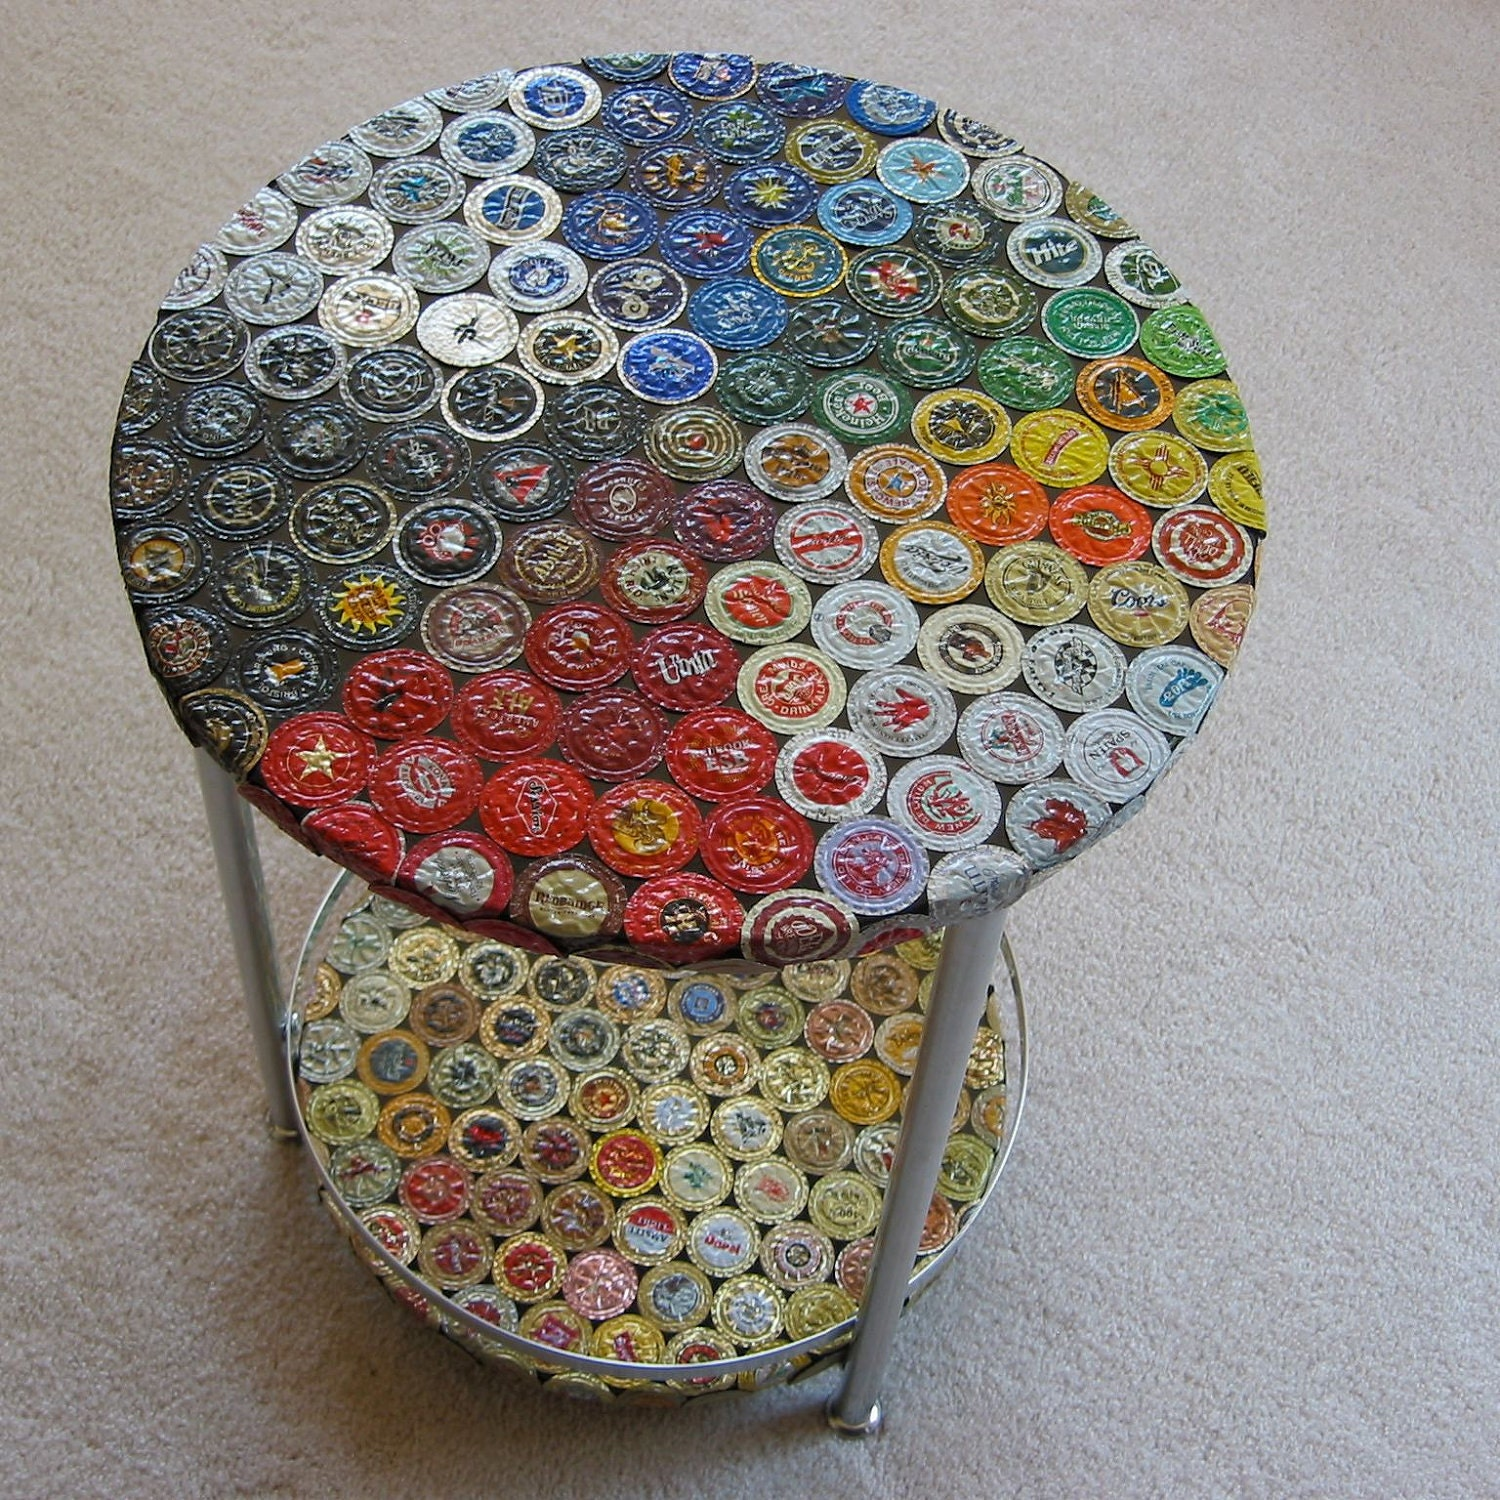 Double decker bottle cap table for What to make with beer bottle caps